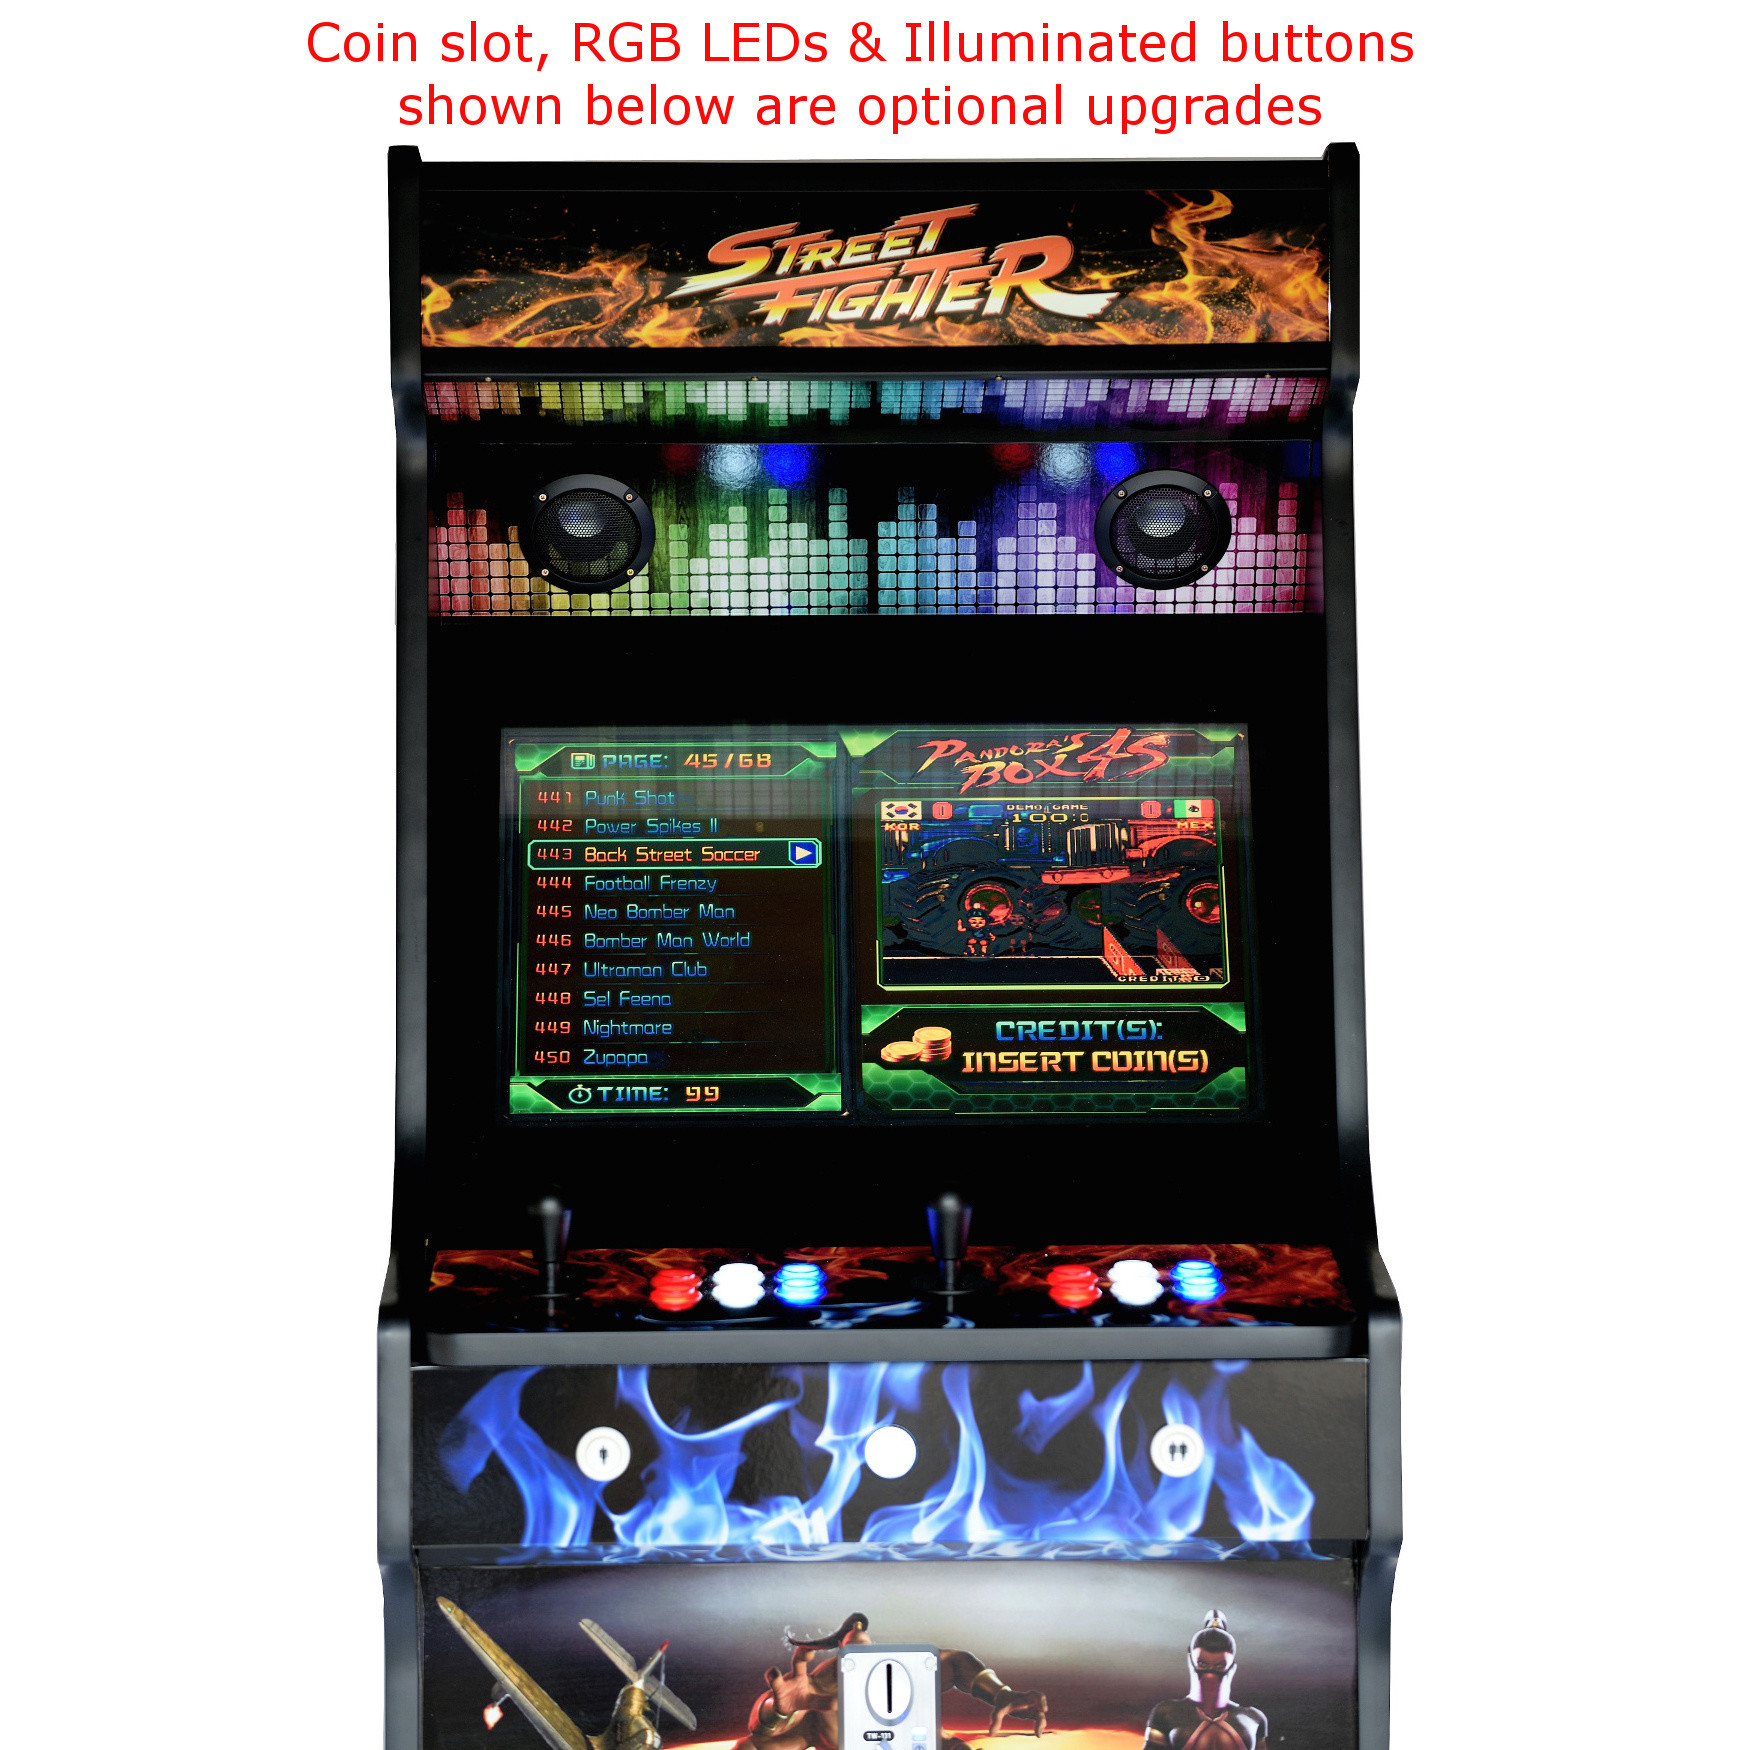 Classic-Upright-Arcade-Machine-Street-Fighter-Theme-With illuminated Buttons and Coin Slot 2 - middle